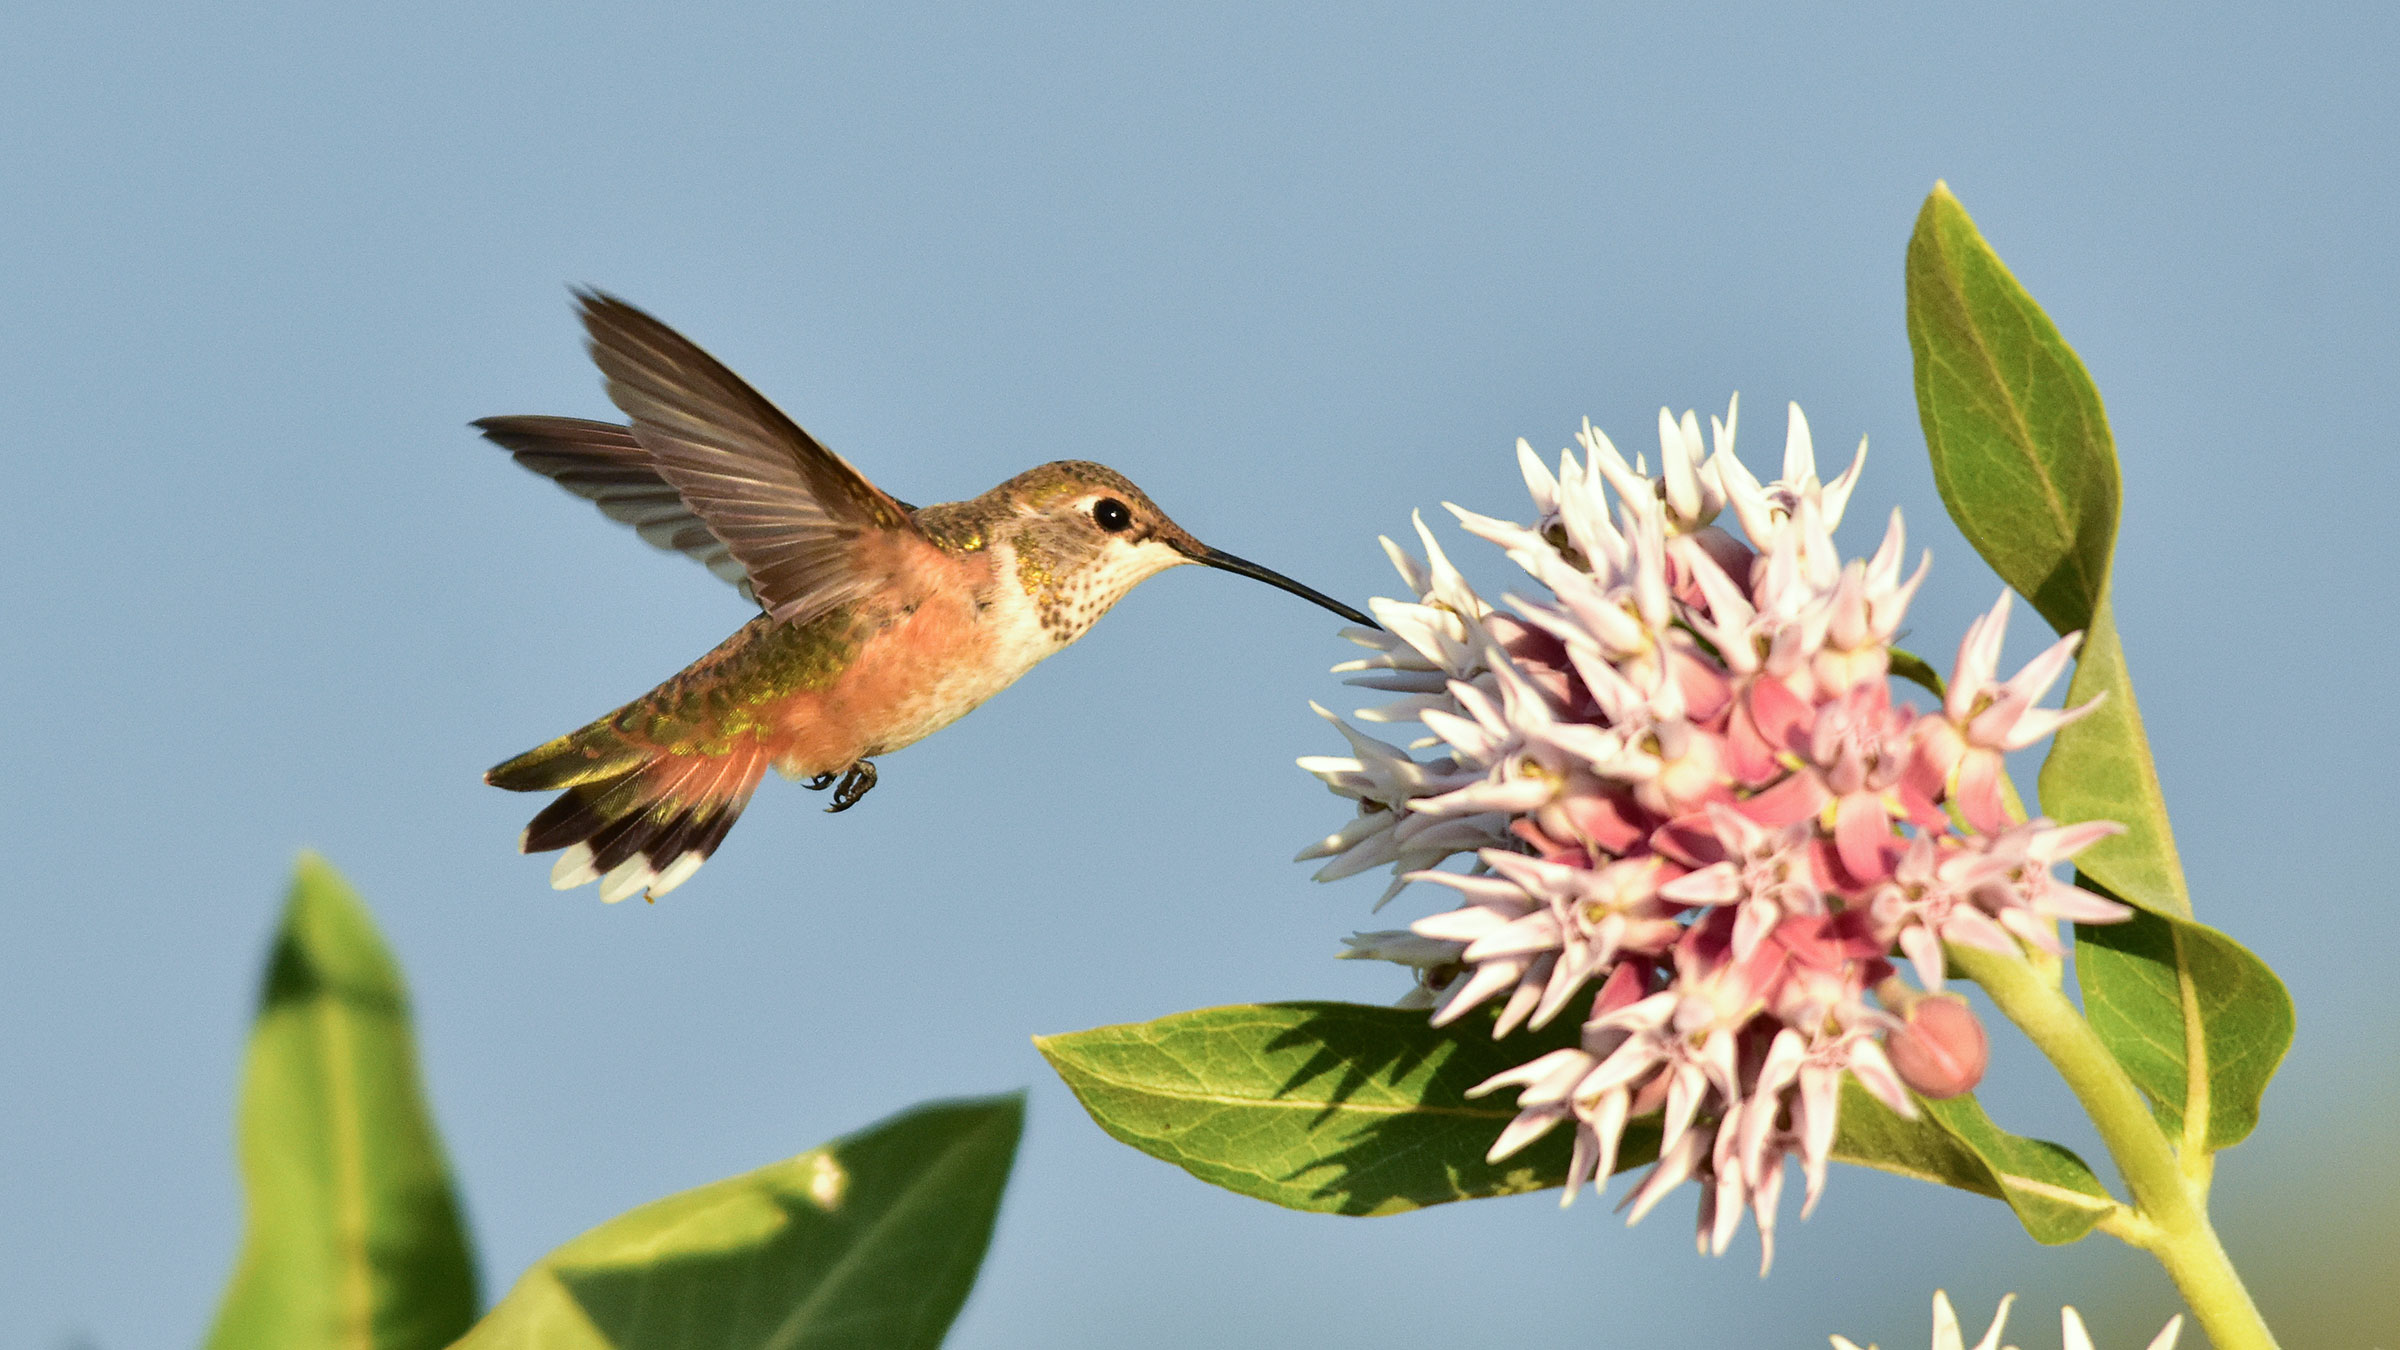 Rufous Hummingbird on showy milkweed plant